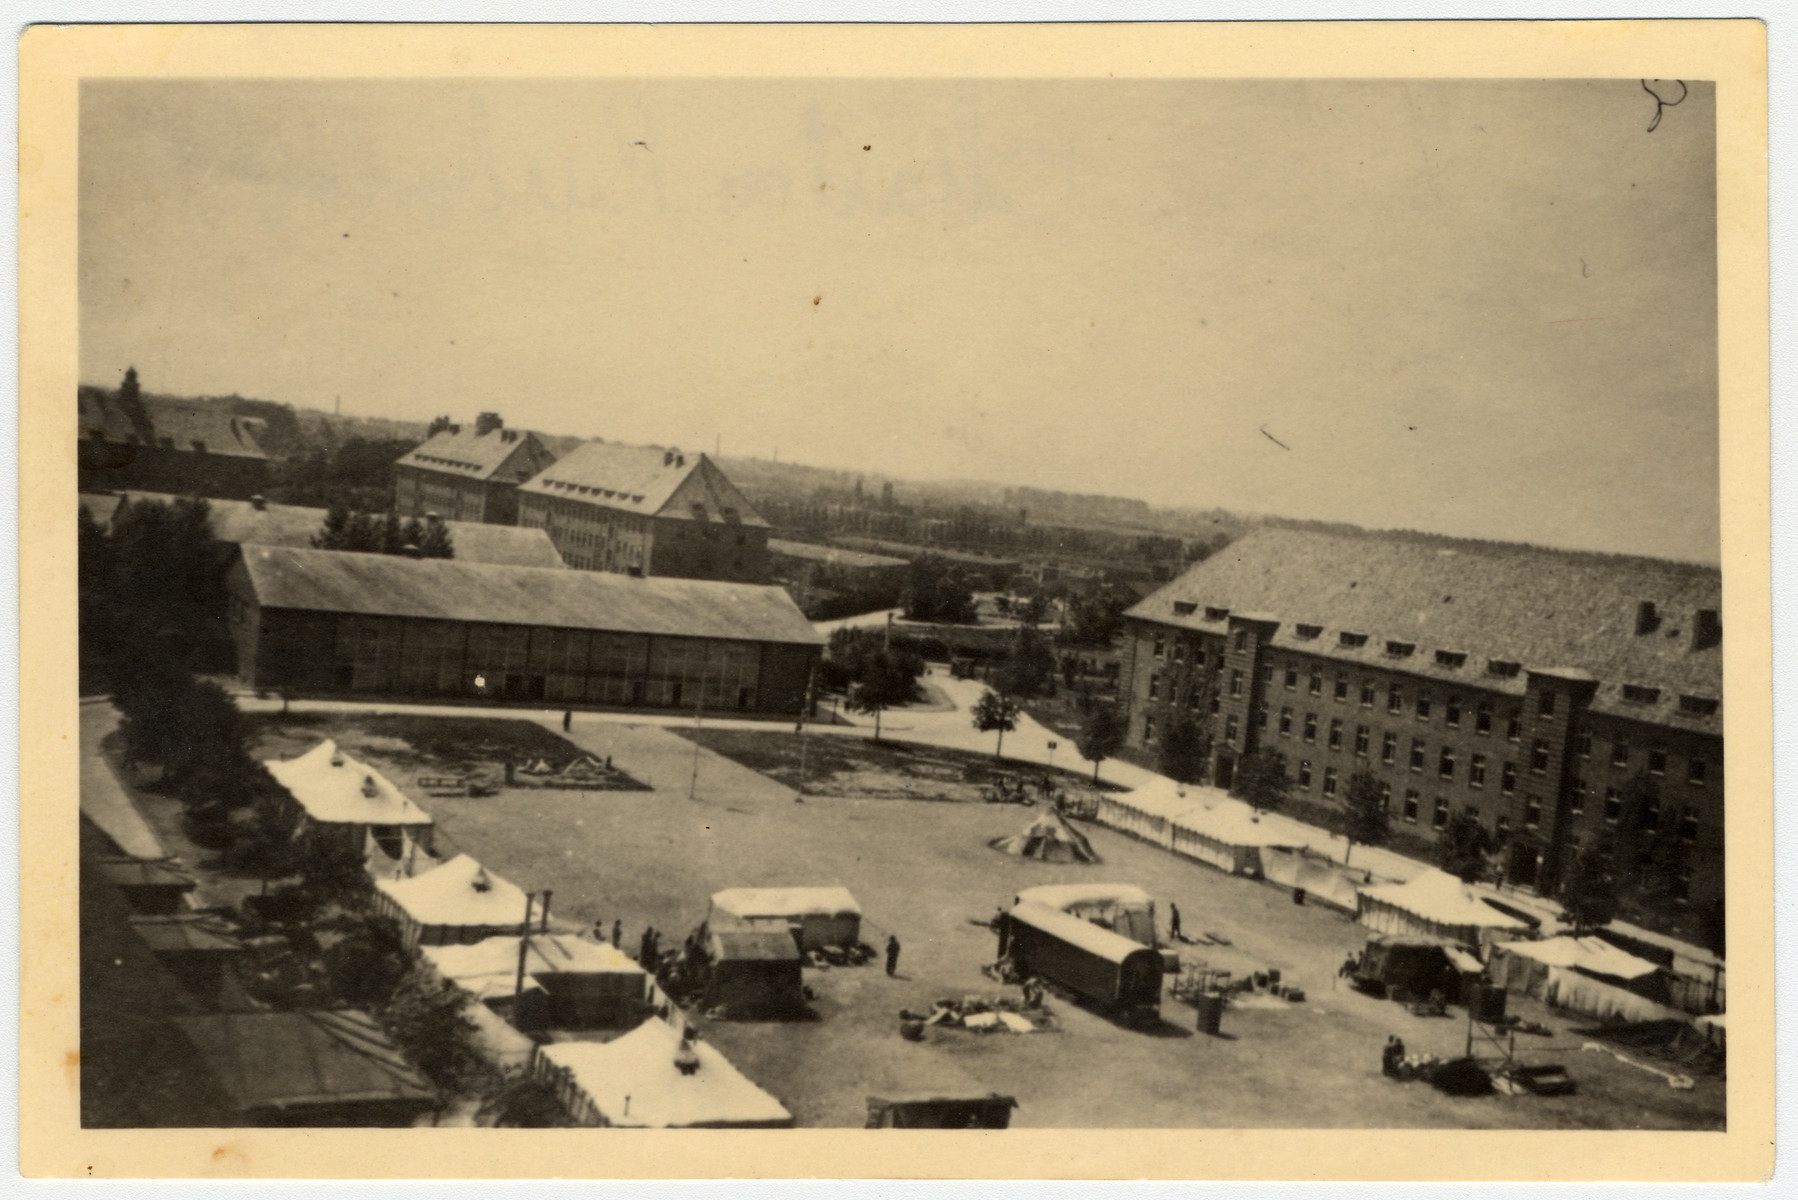 View of the veteran's hospital complex at Luebeck.